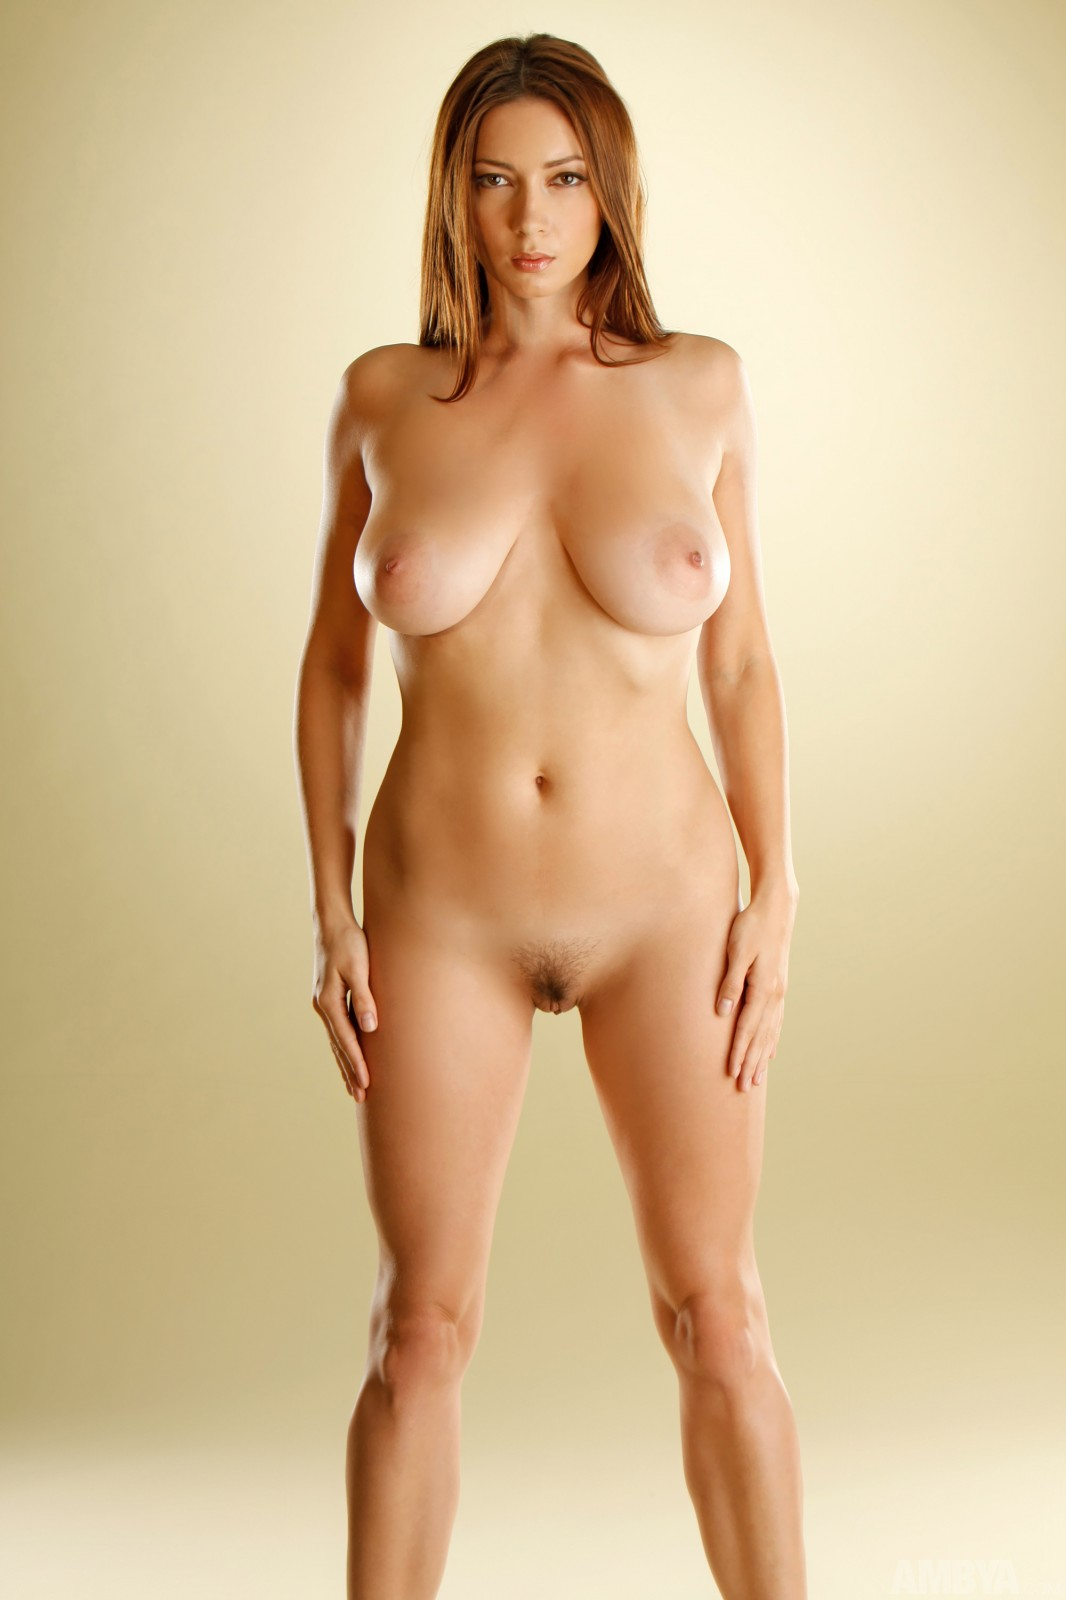 Young Blonde Girls Nude